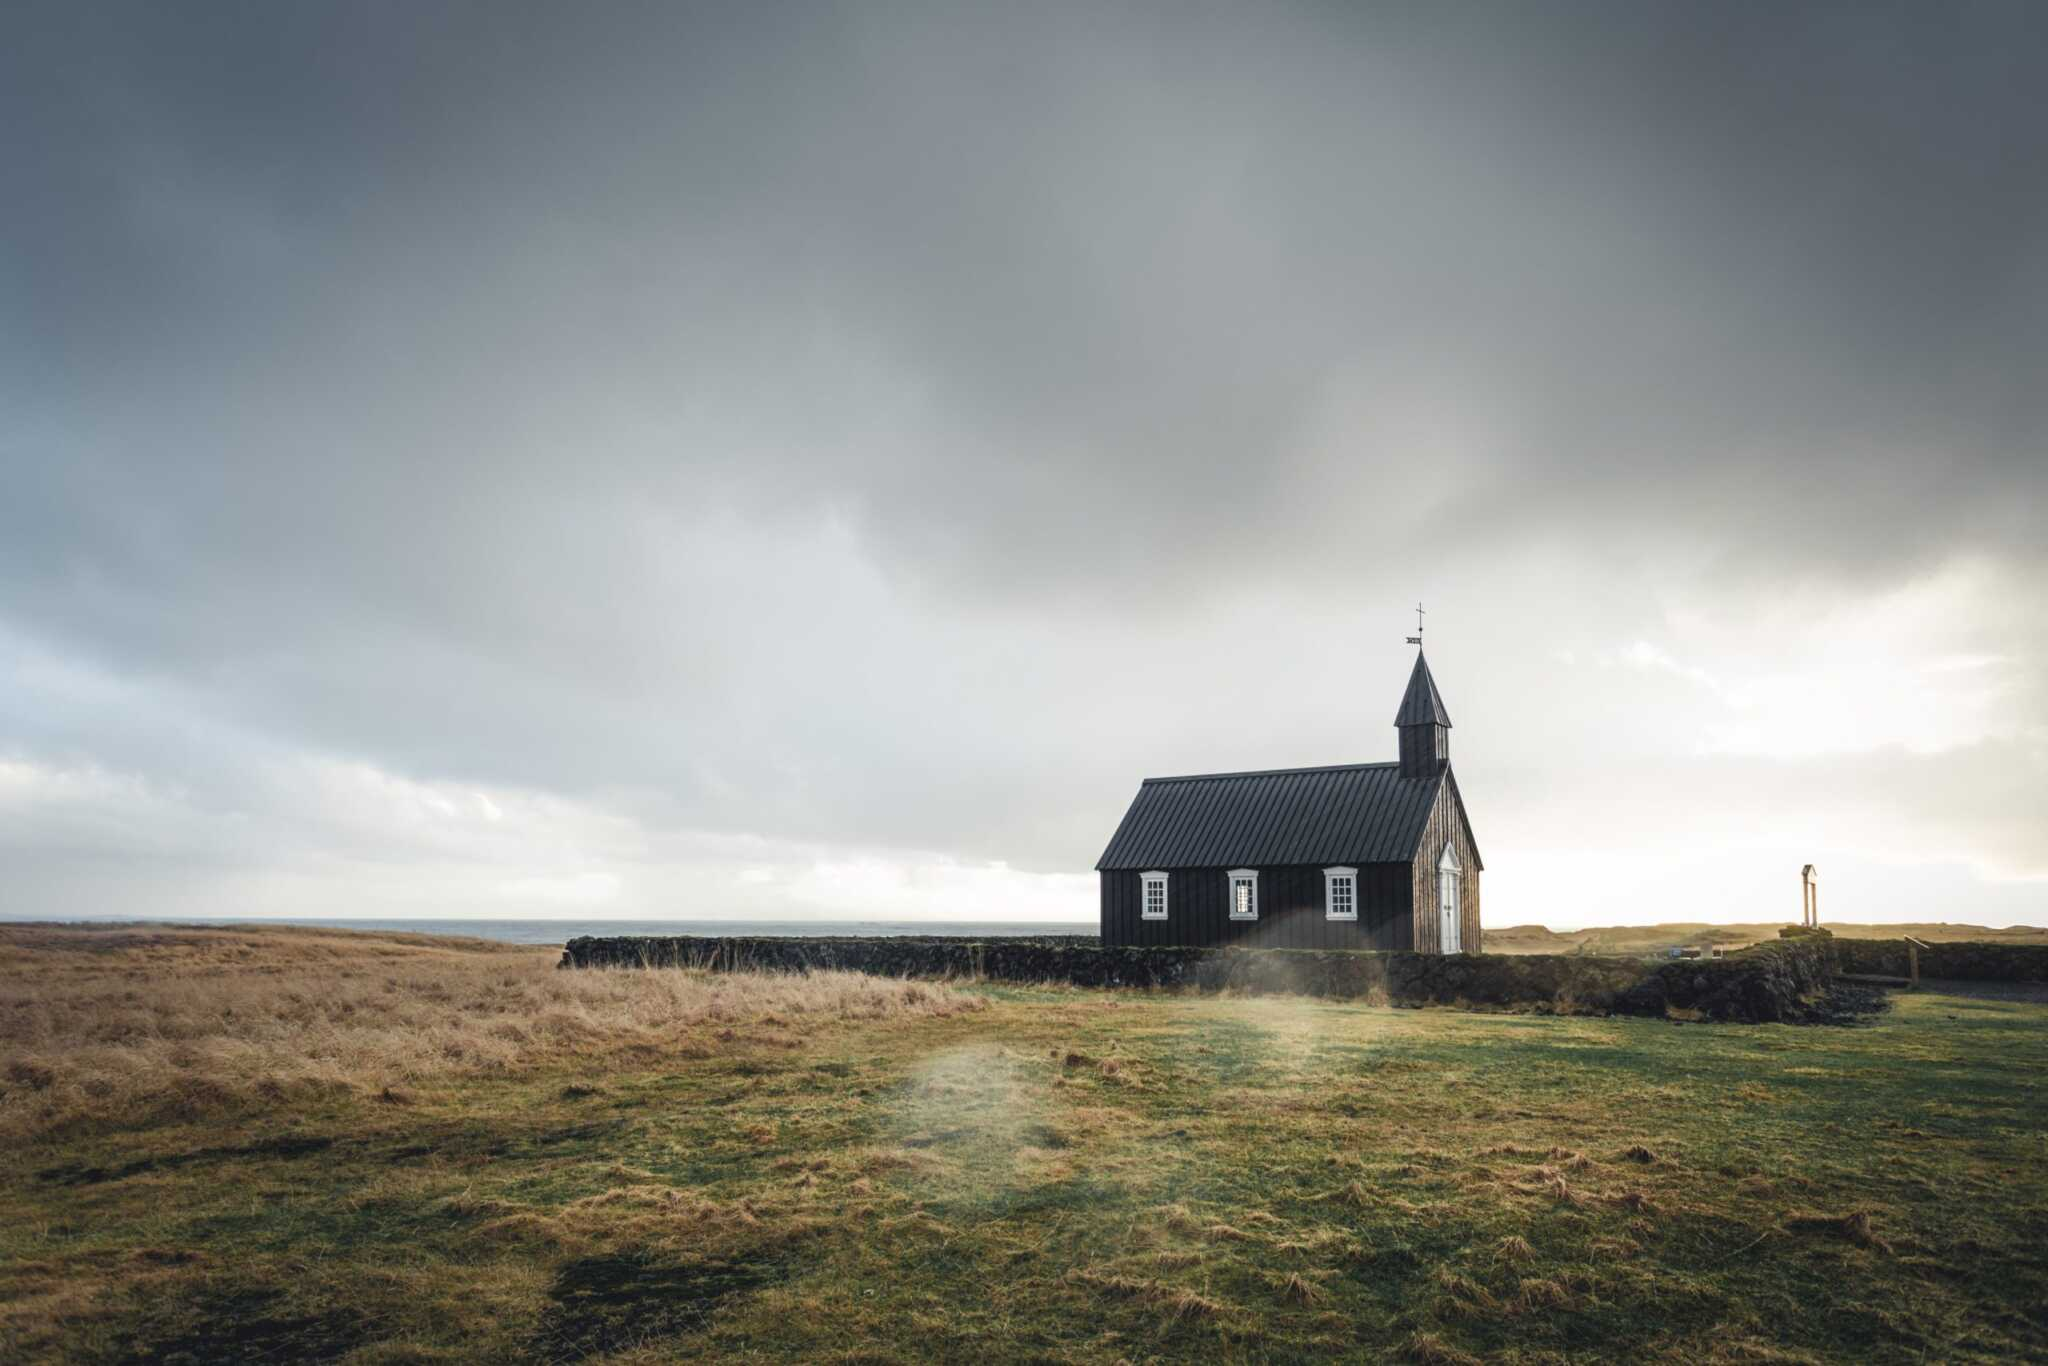 wooden church under stormy sky in a large meadow